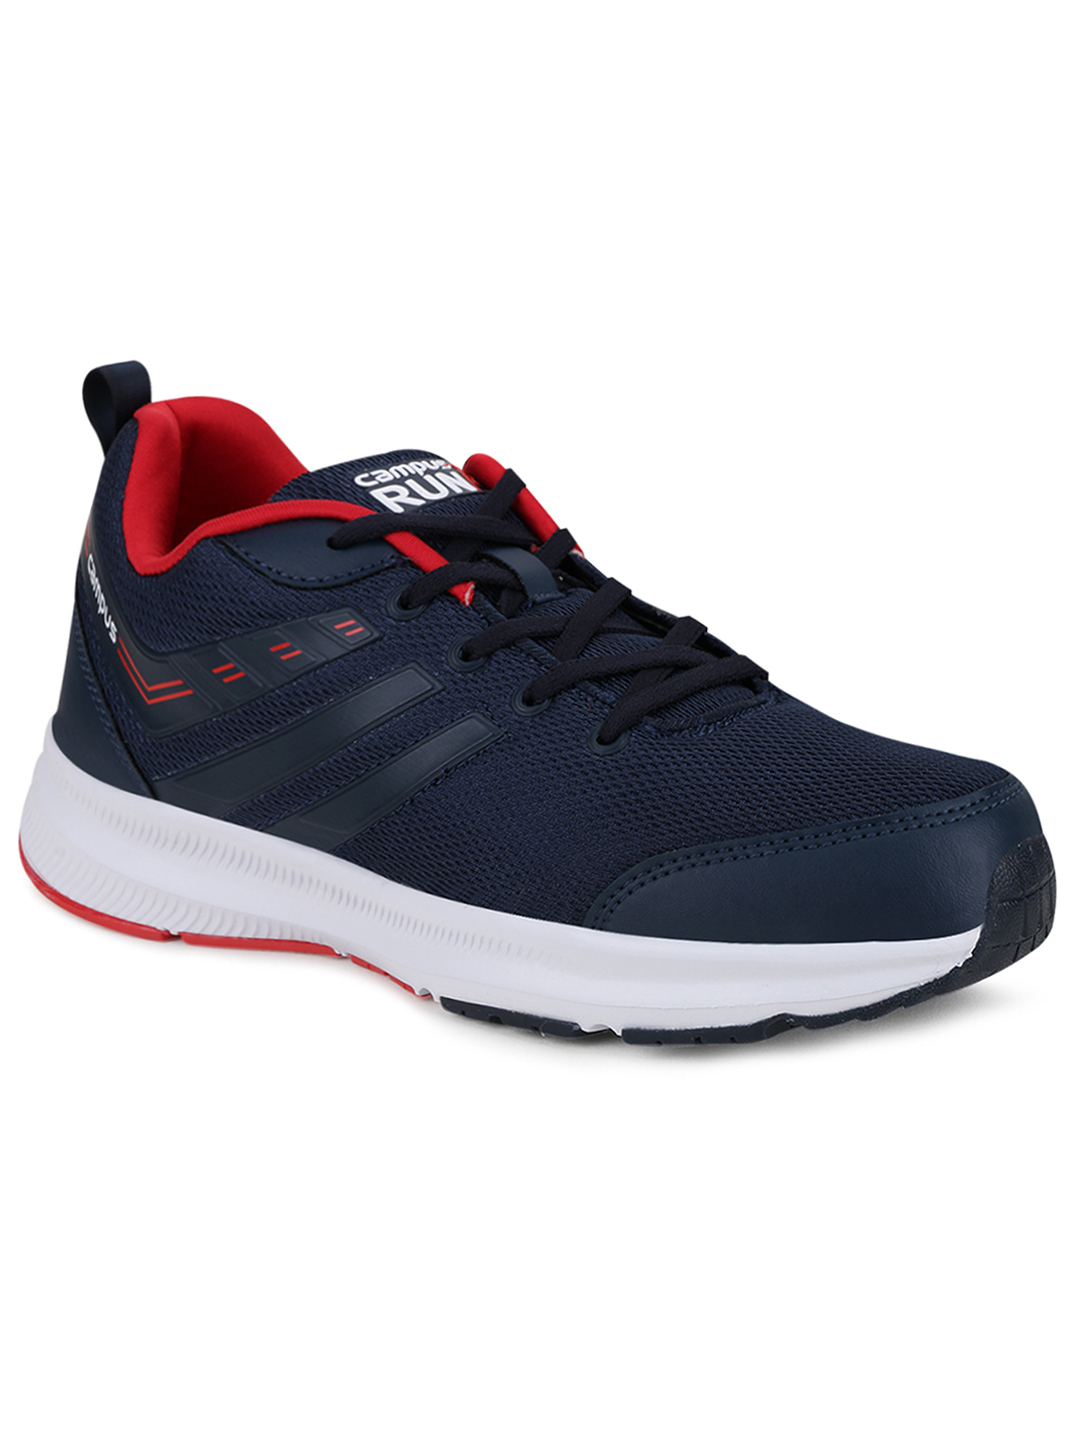 Campus Shoes | Navy Rain Running Shoes